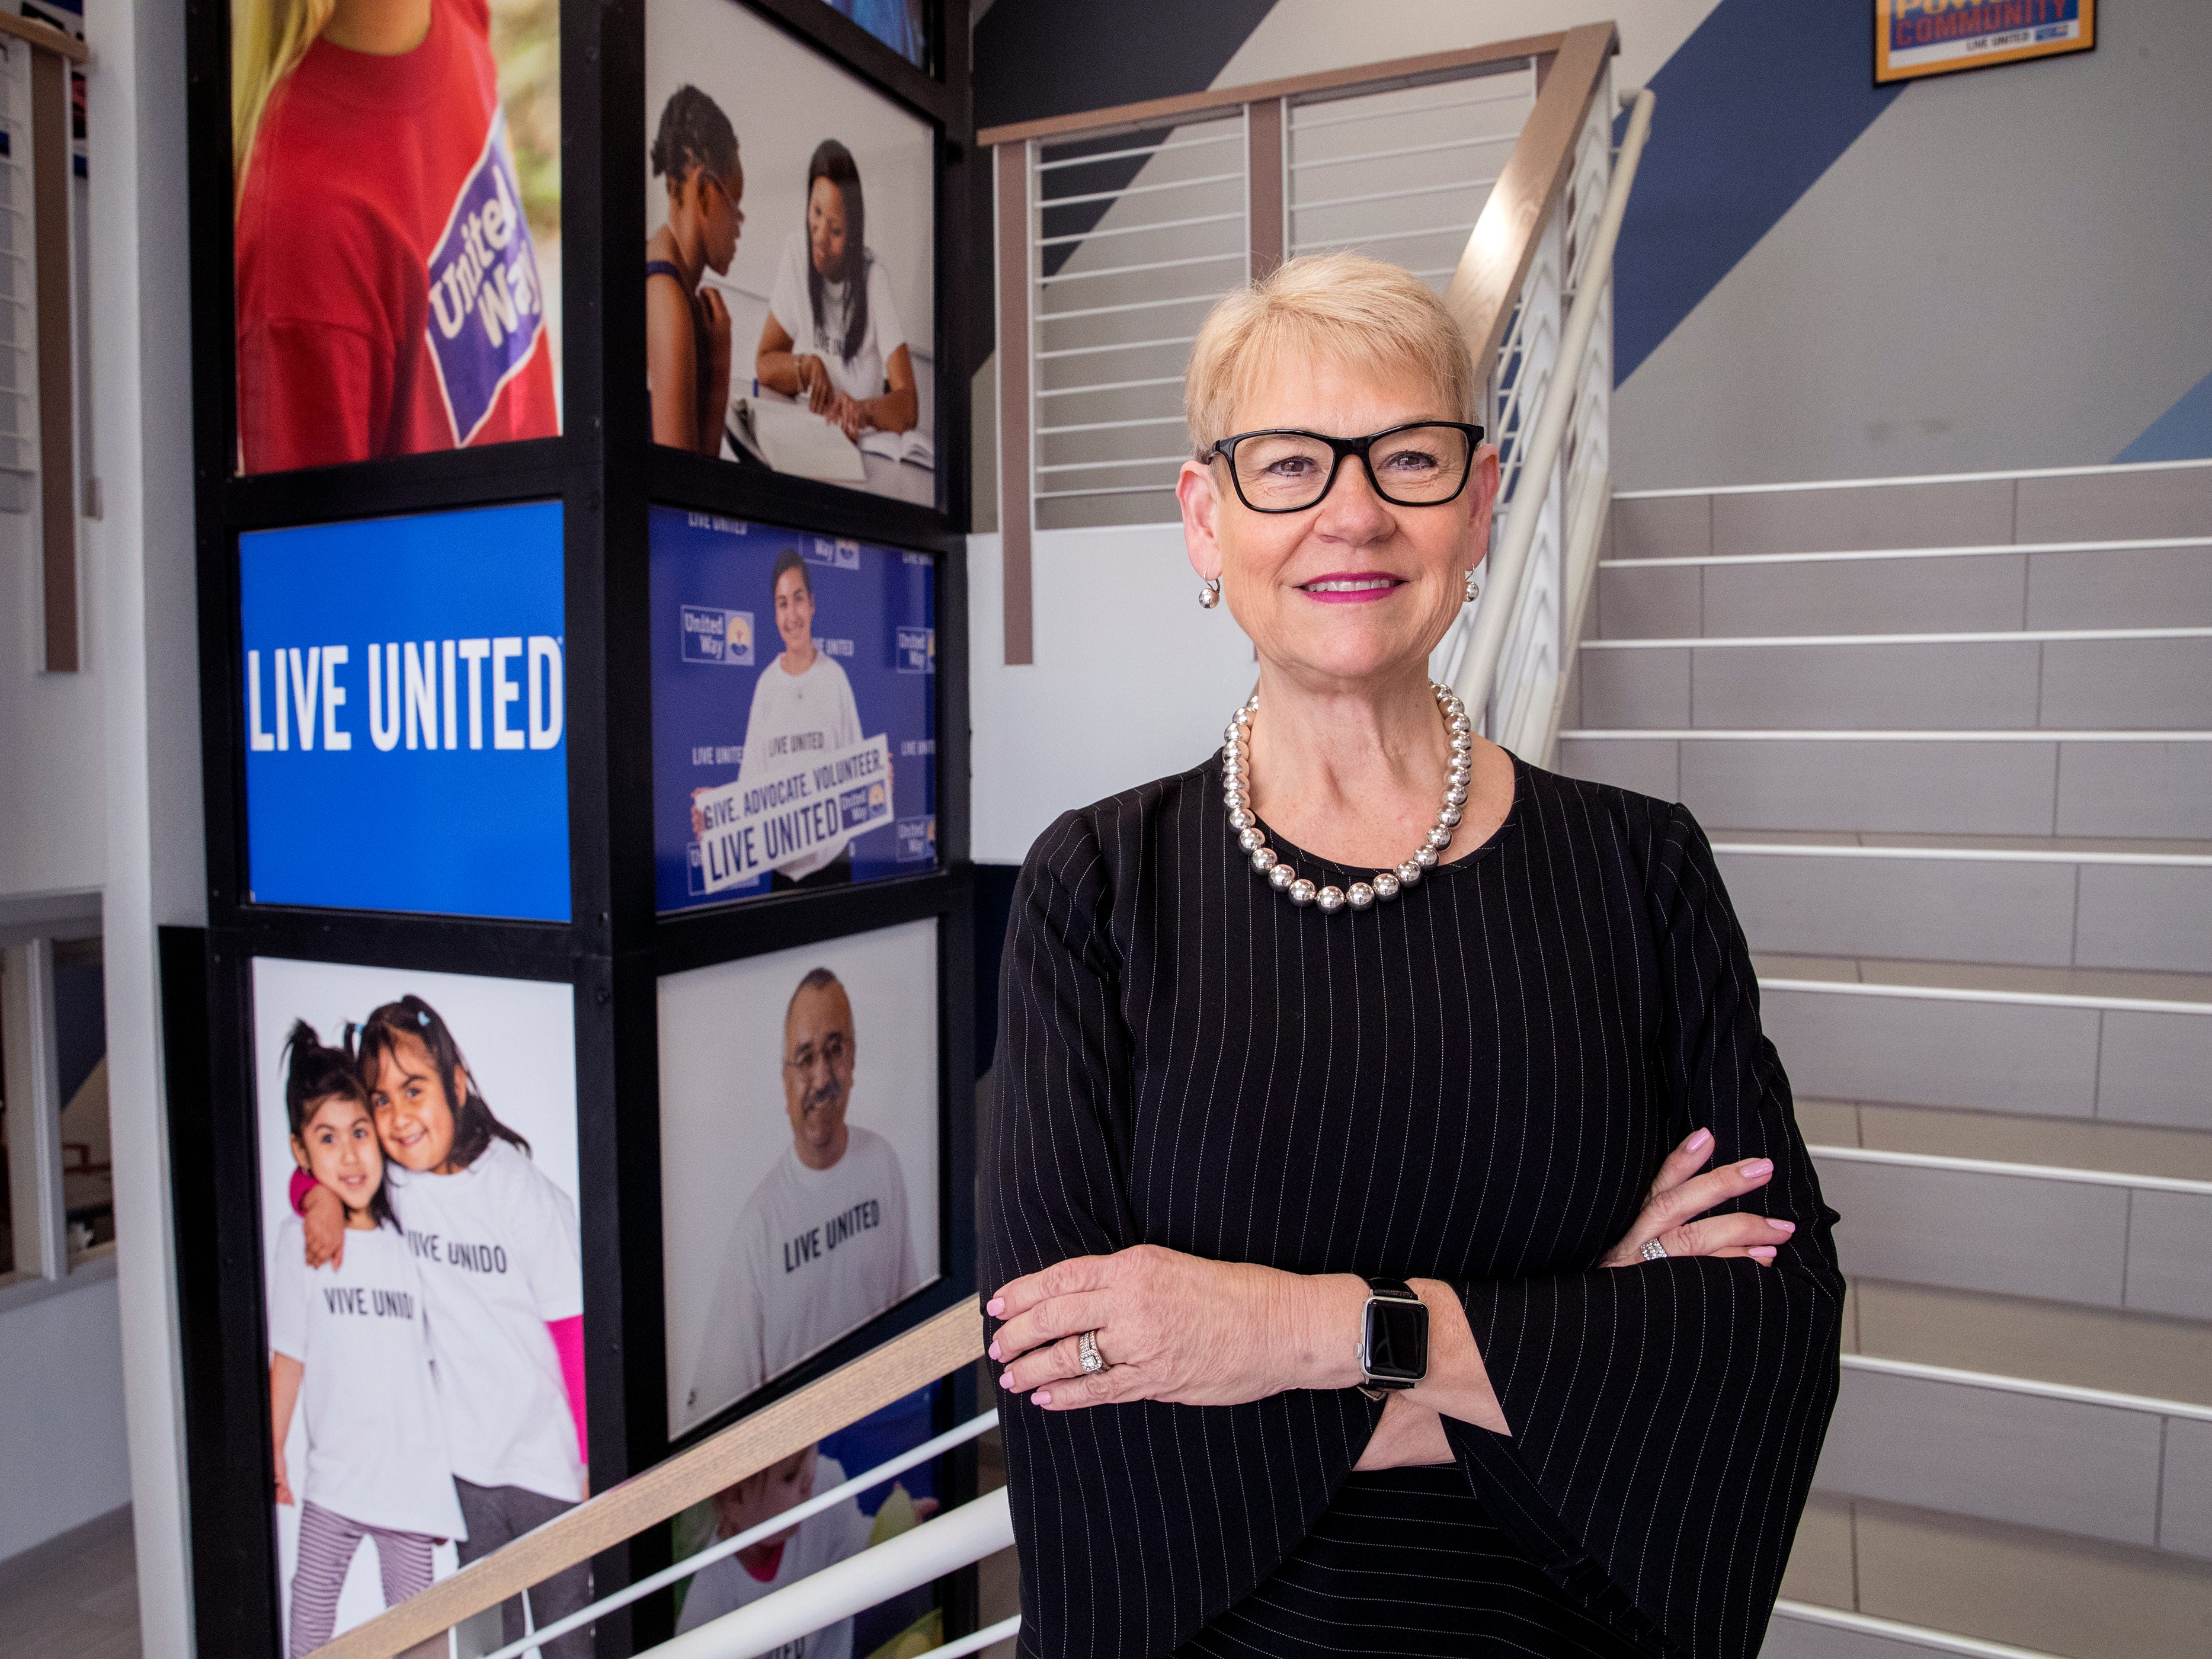 Catrina Wilson, longtime CEO of United Way of the Coastal Bend, will retire in April. Prior to the United Way, Wilson was the executive director of the Women's Shelter of South Texas, now the Purple Door, and is credited with helping it recover from crippling debt.